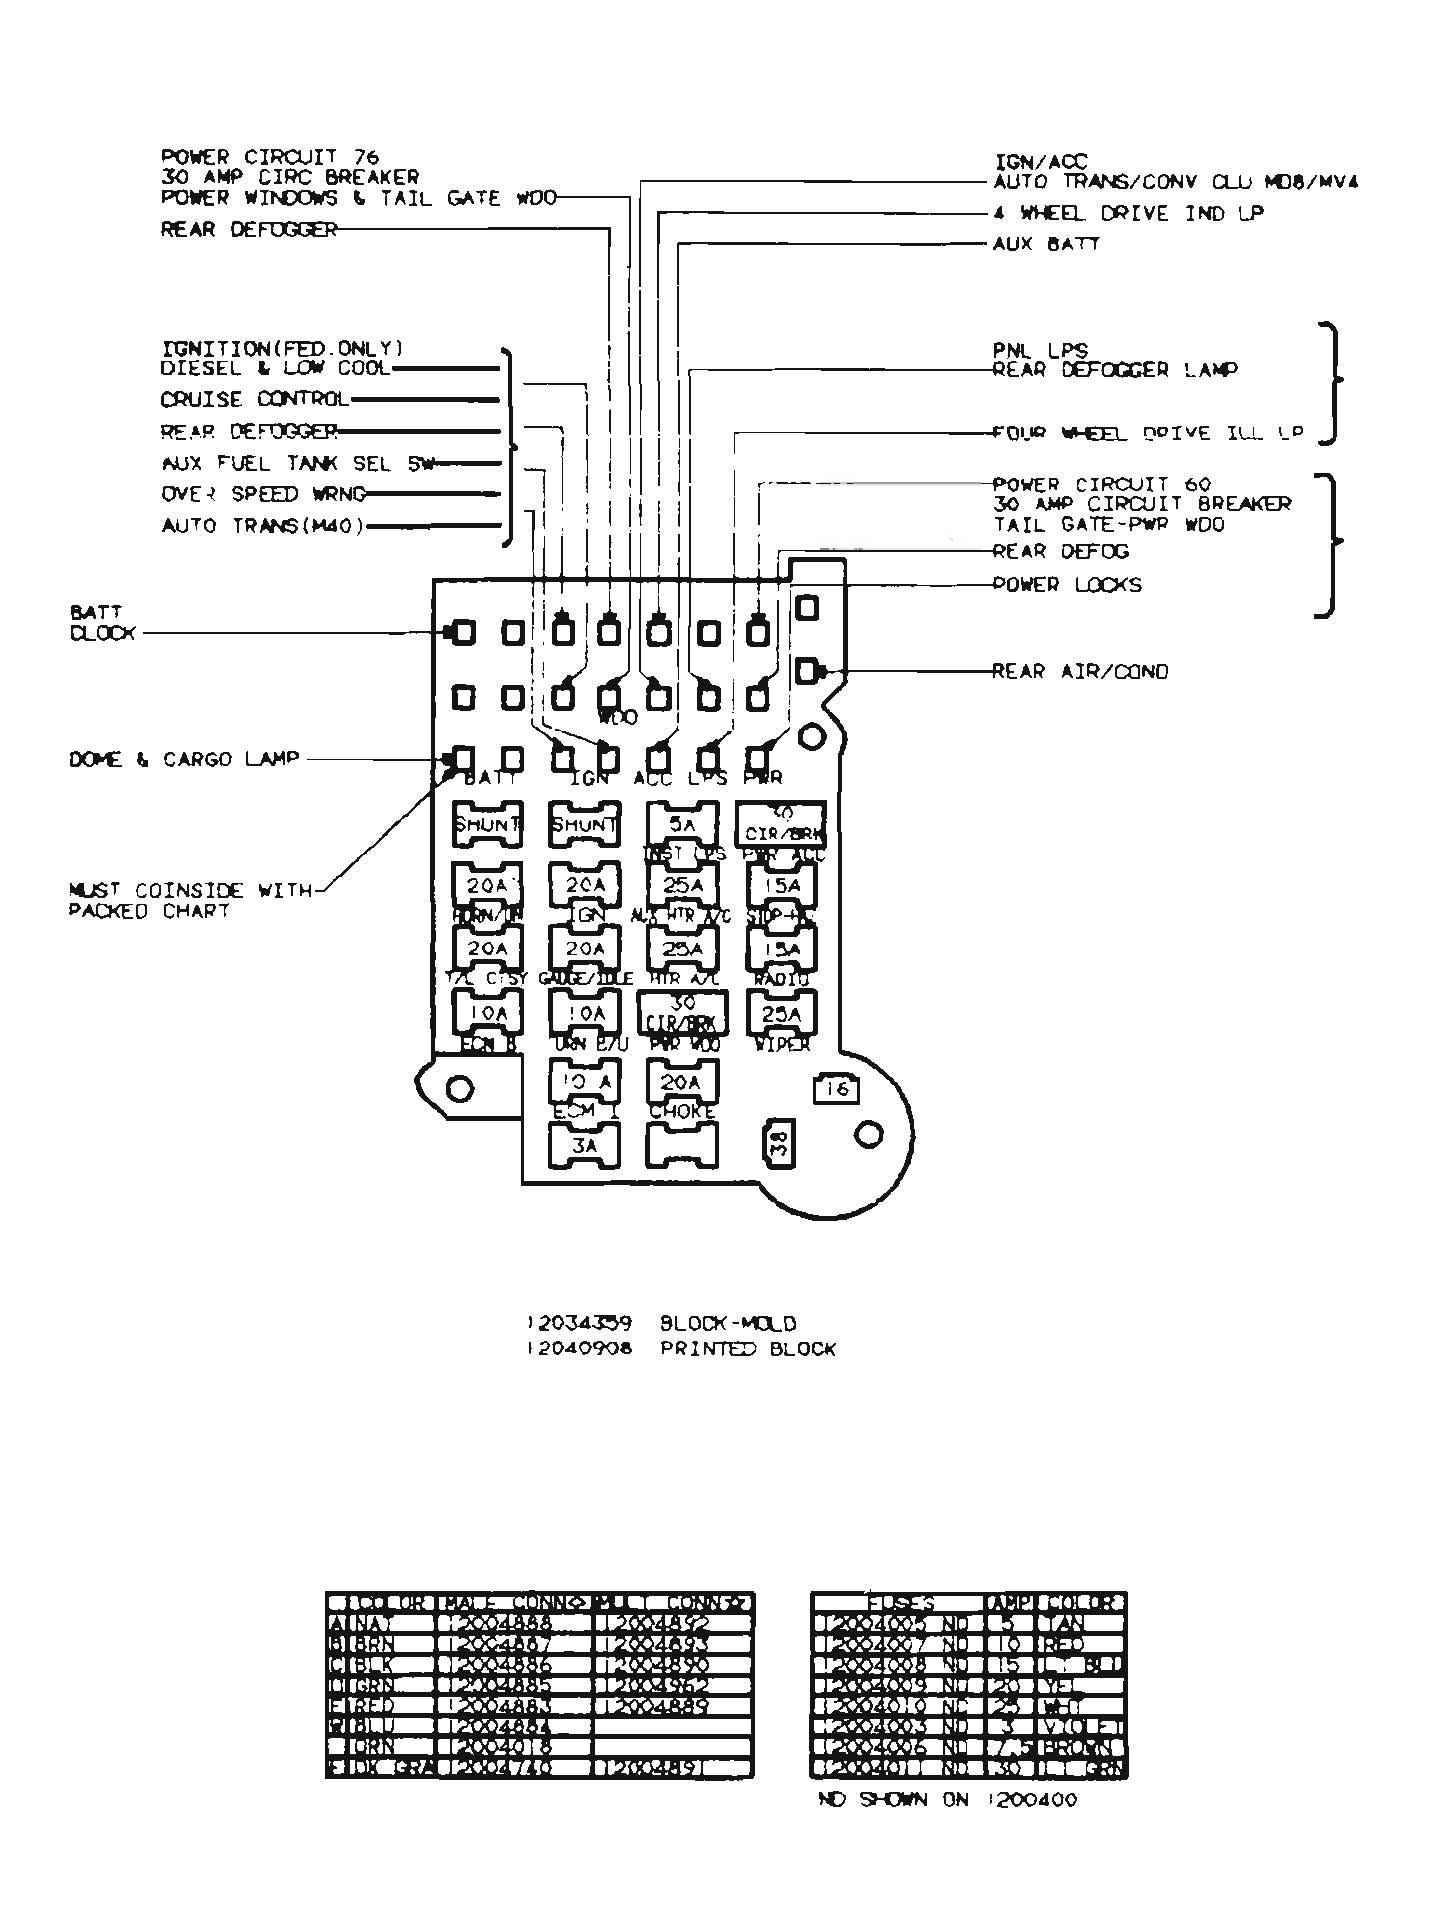 A63c9 79 Chevy Fuse Box Diagram